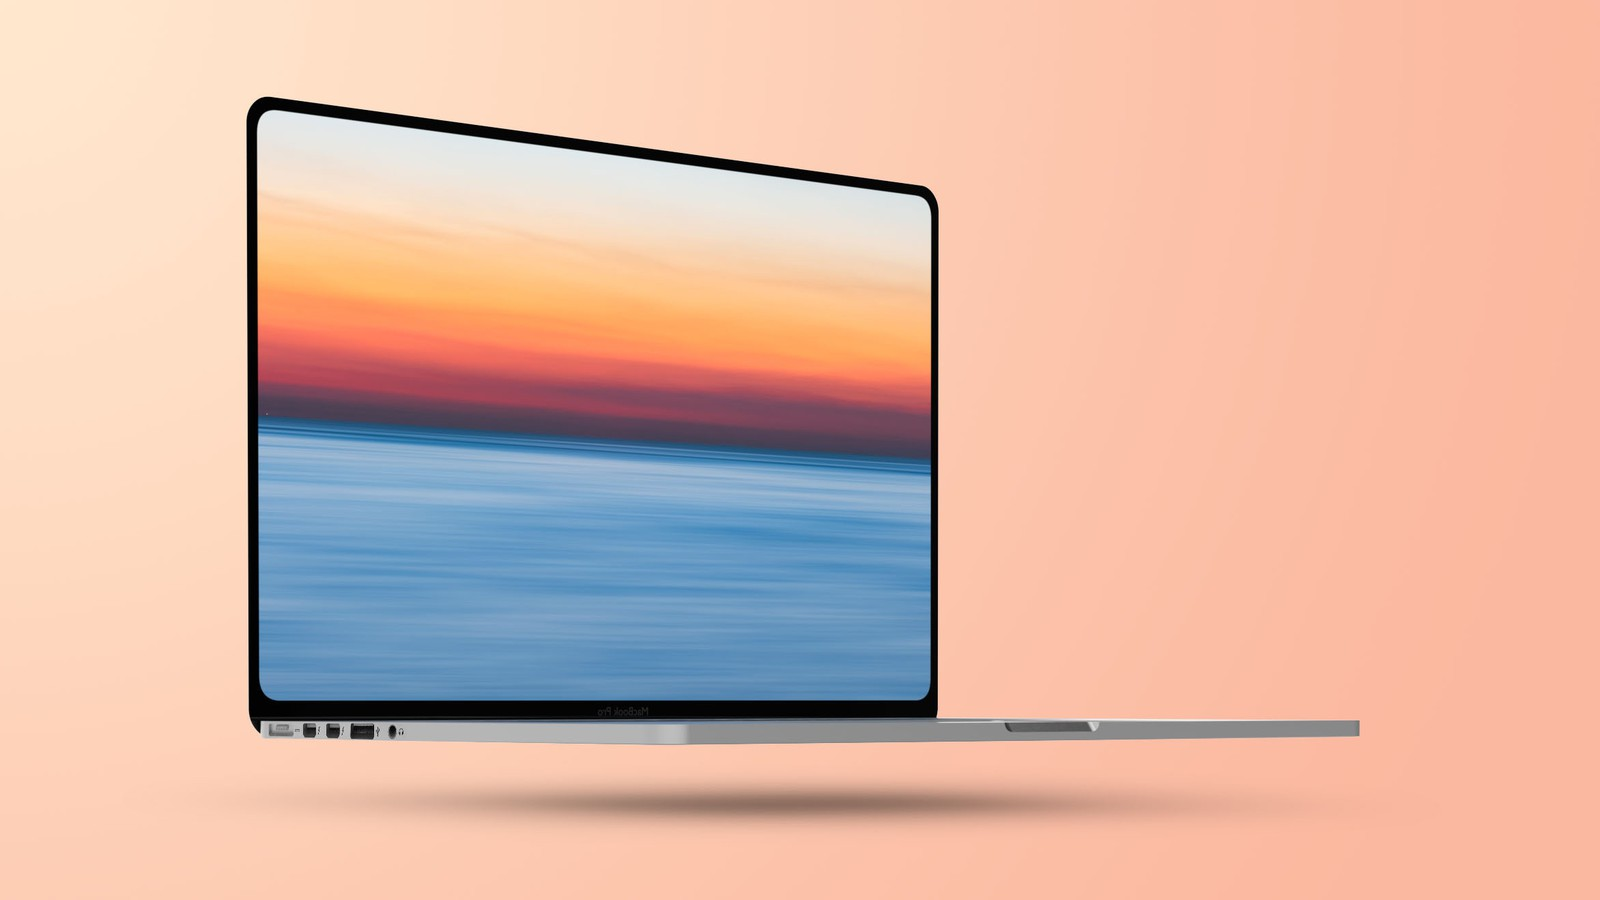 Apple's 2021 MacBook Pro refreshes will have a flat design, aping the iPhone 12 series - Notebookcheck.net